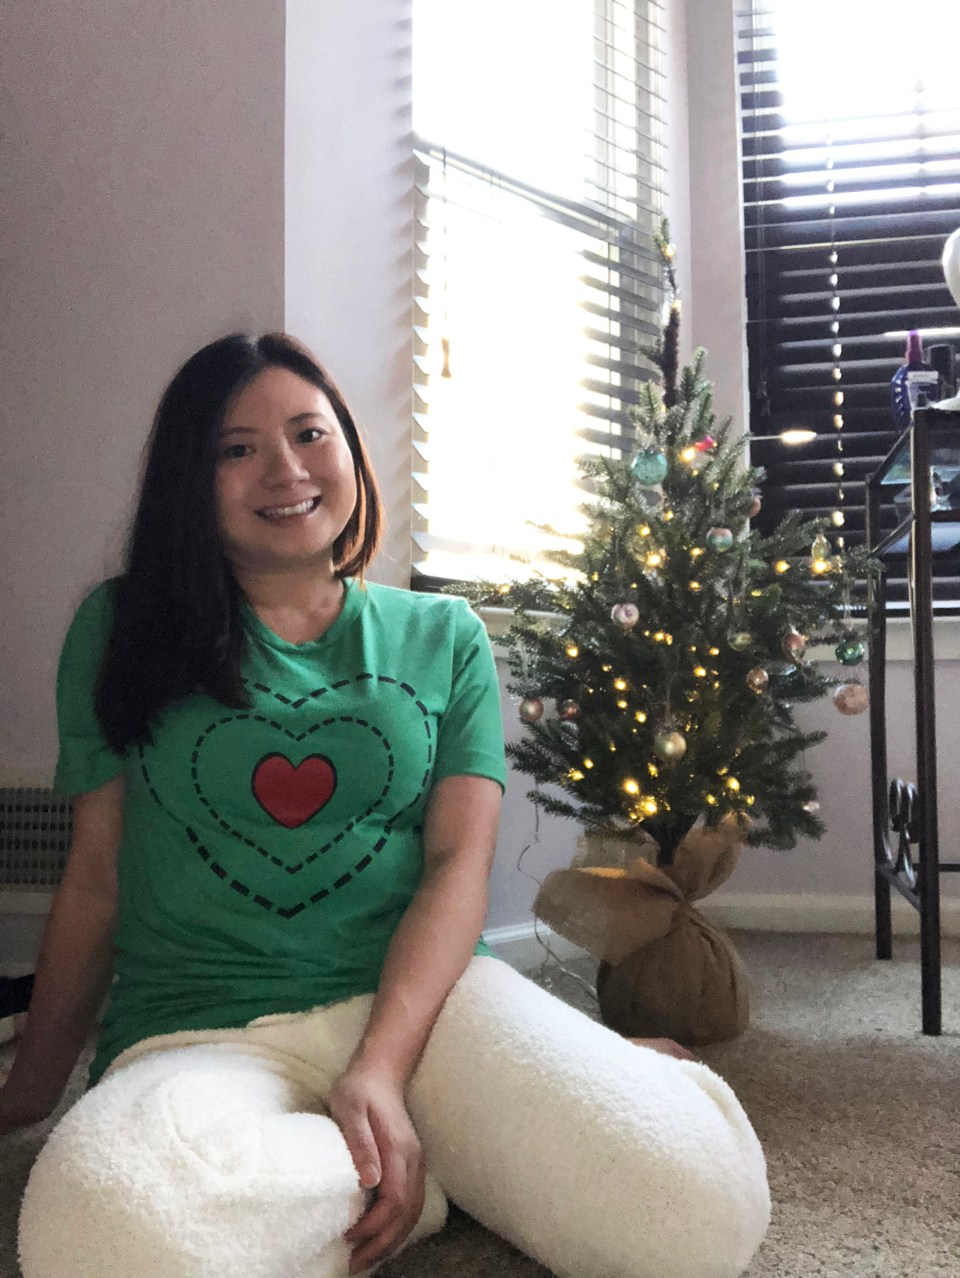 Grinch - Heart Two Sizes Too Small Tee + Teddy Leggings 1